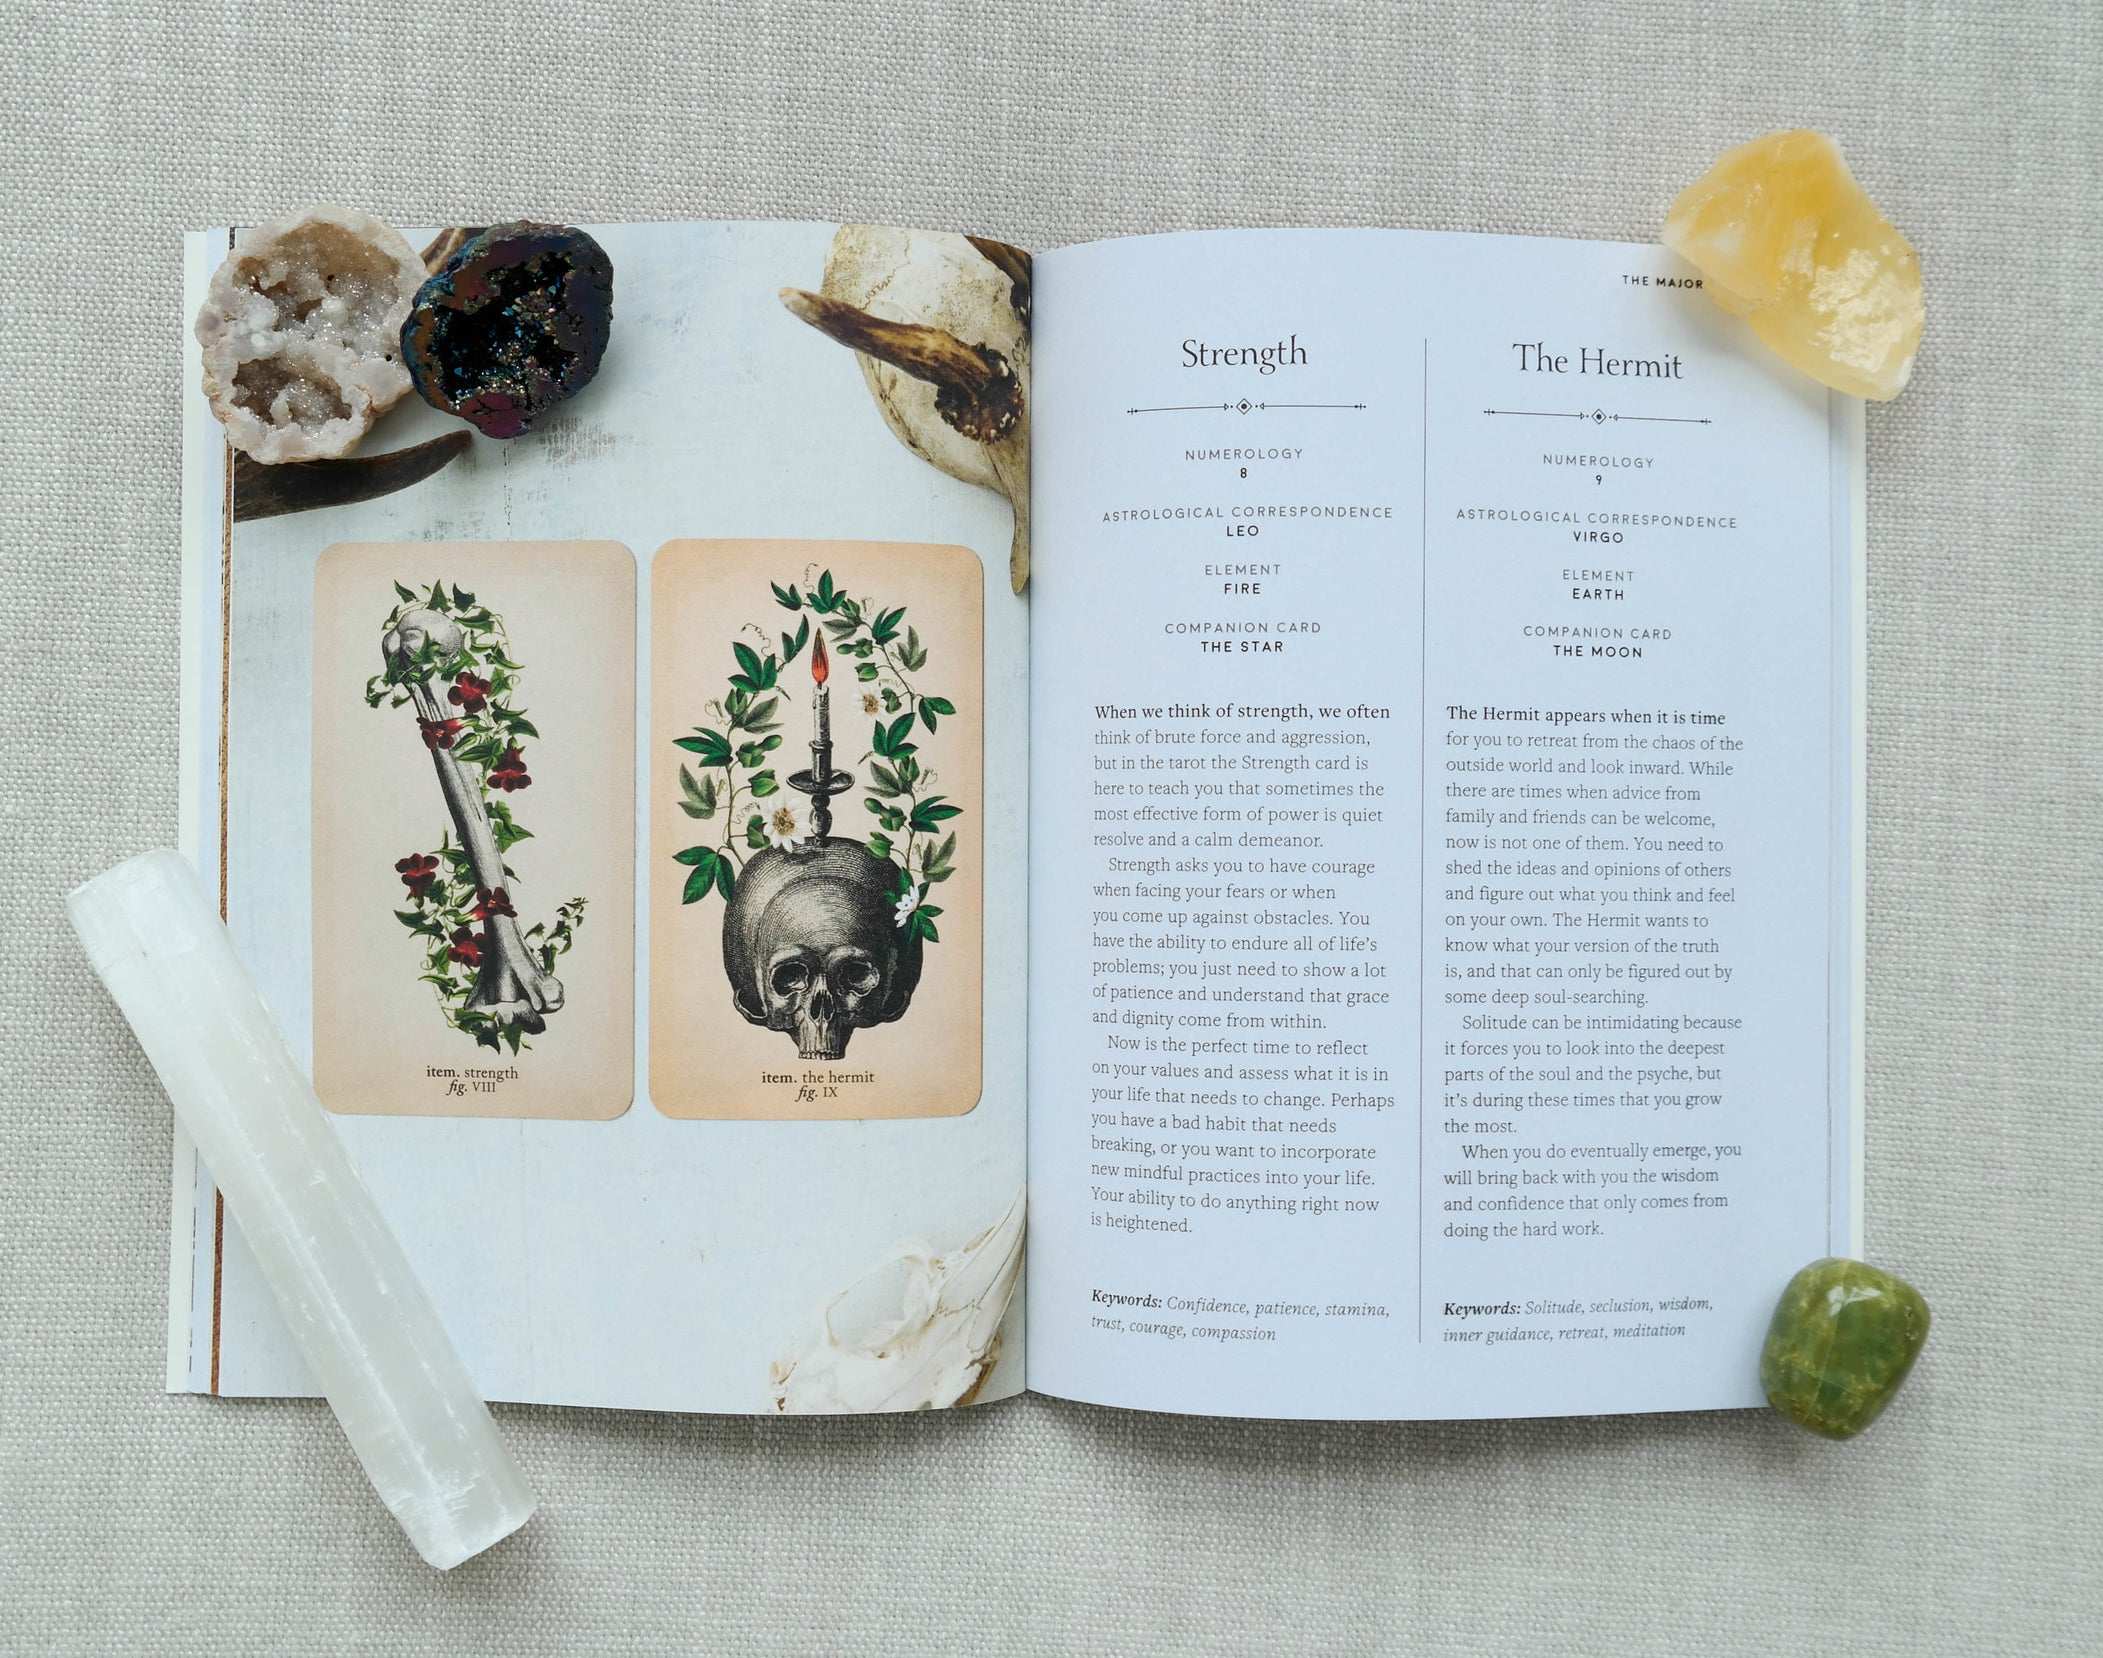 The guidebook for the Antique Anatomy deck lays open, showing the meanings for the strength and hermit cards